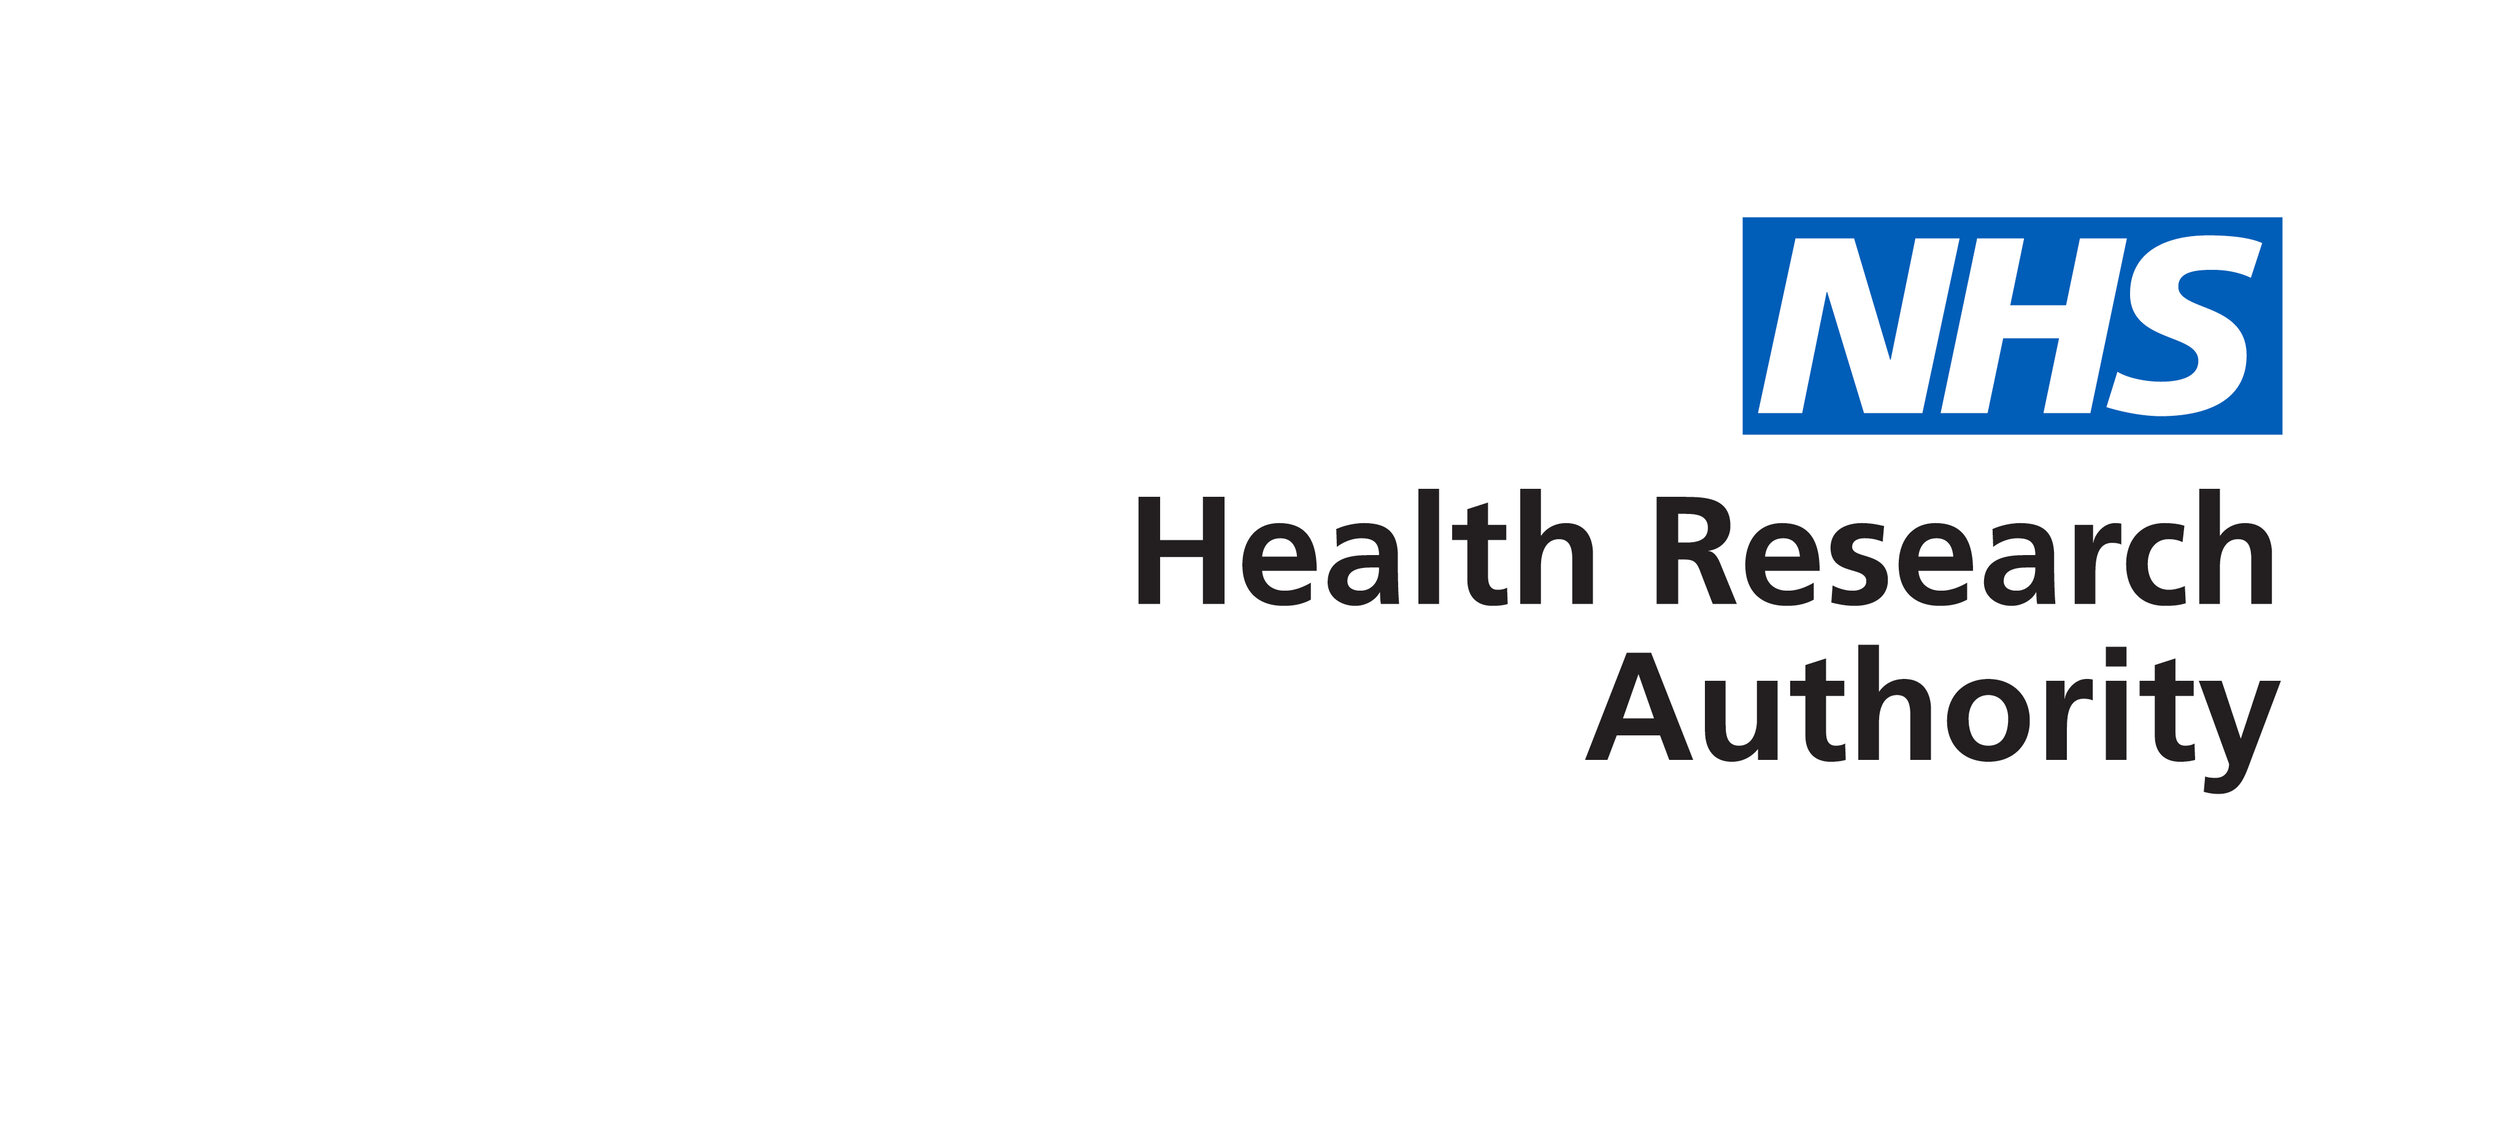 NHS Health Research Authority RGB Blue.jpg